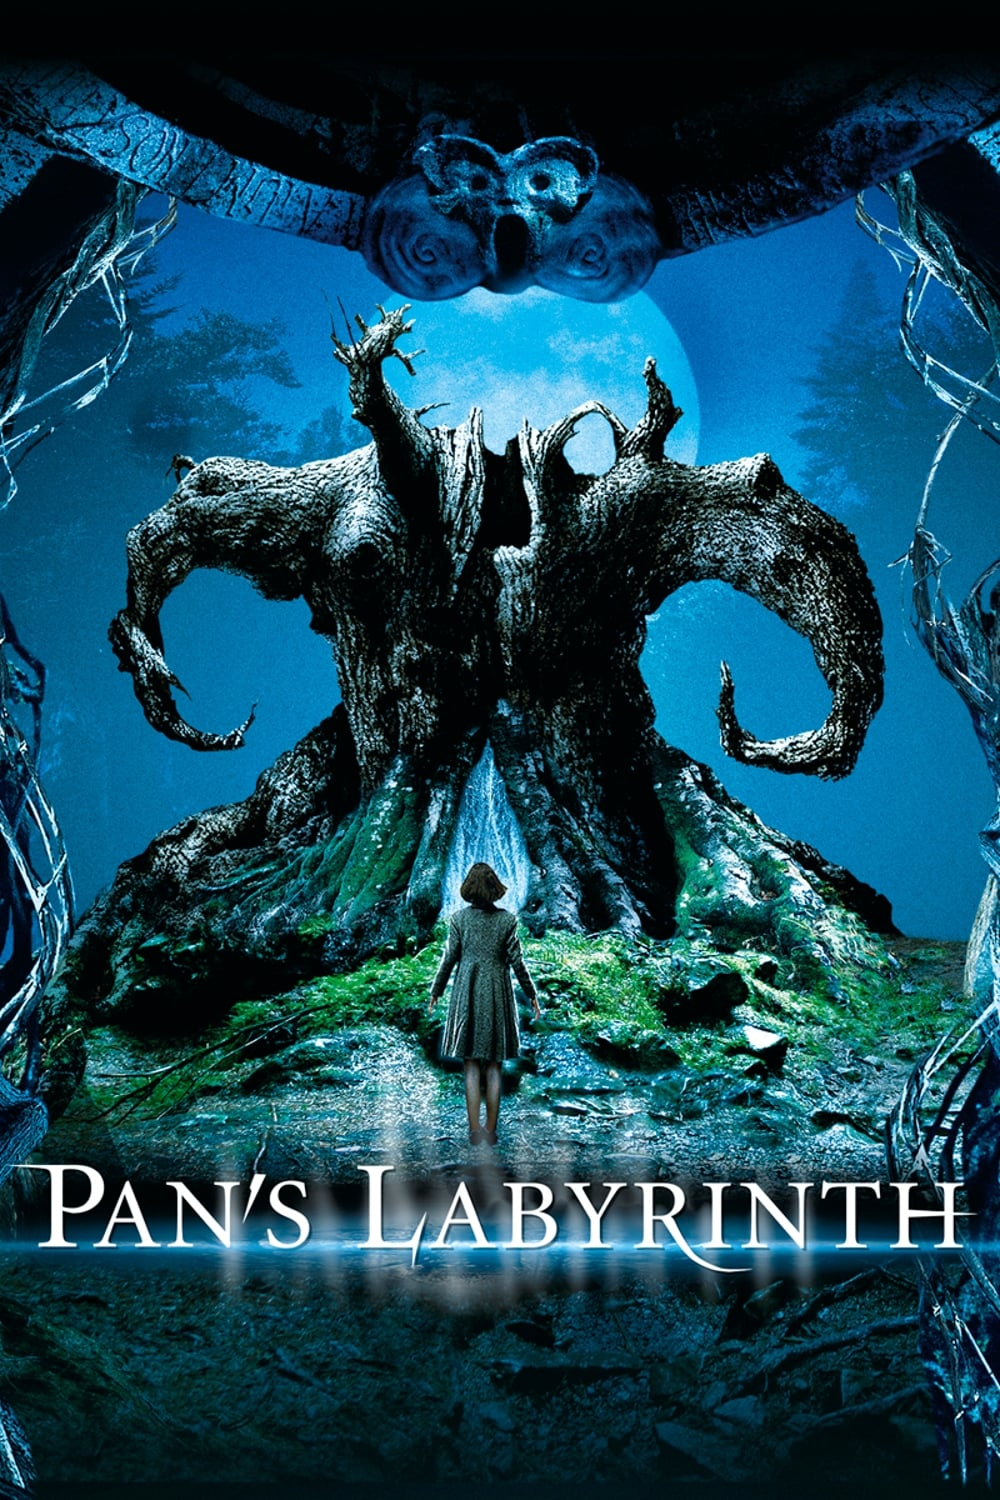 Pans Labyrinth Analysis